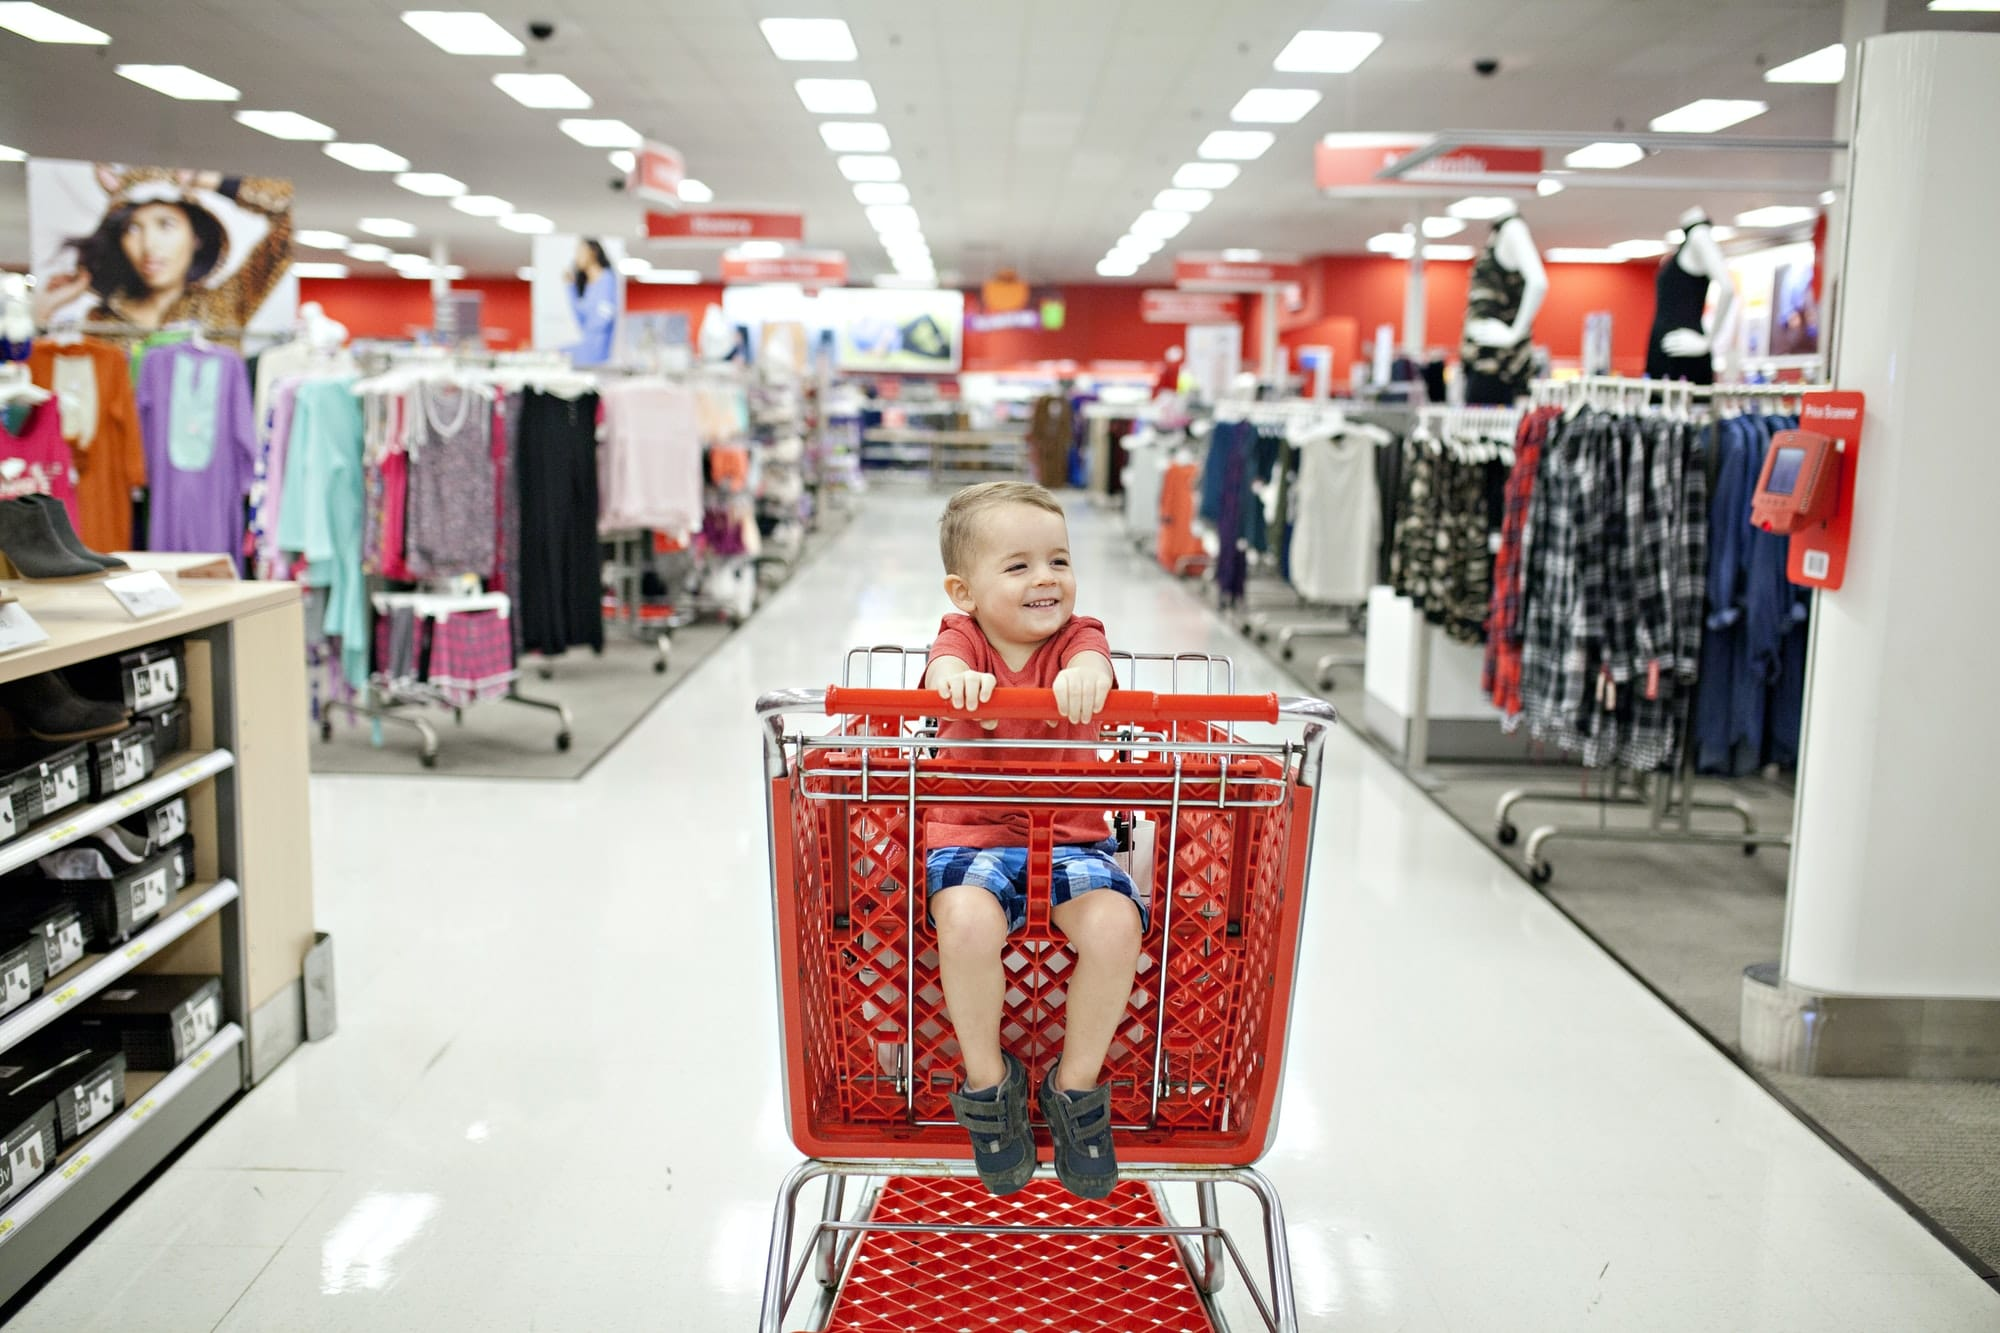 Little boy in target shopping cart at the store.